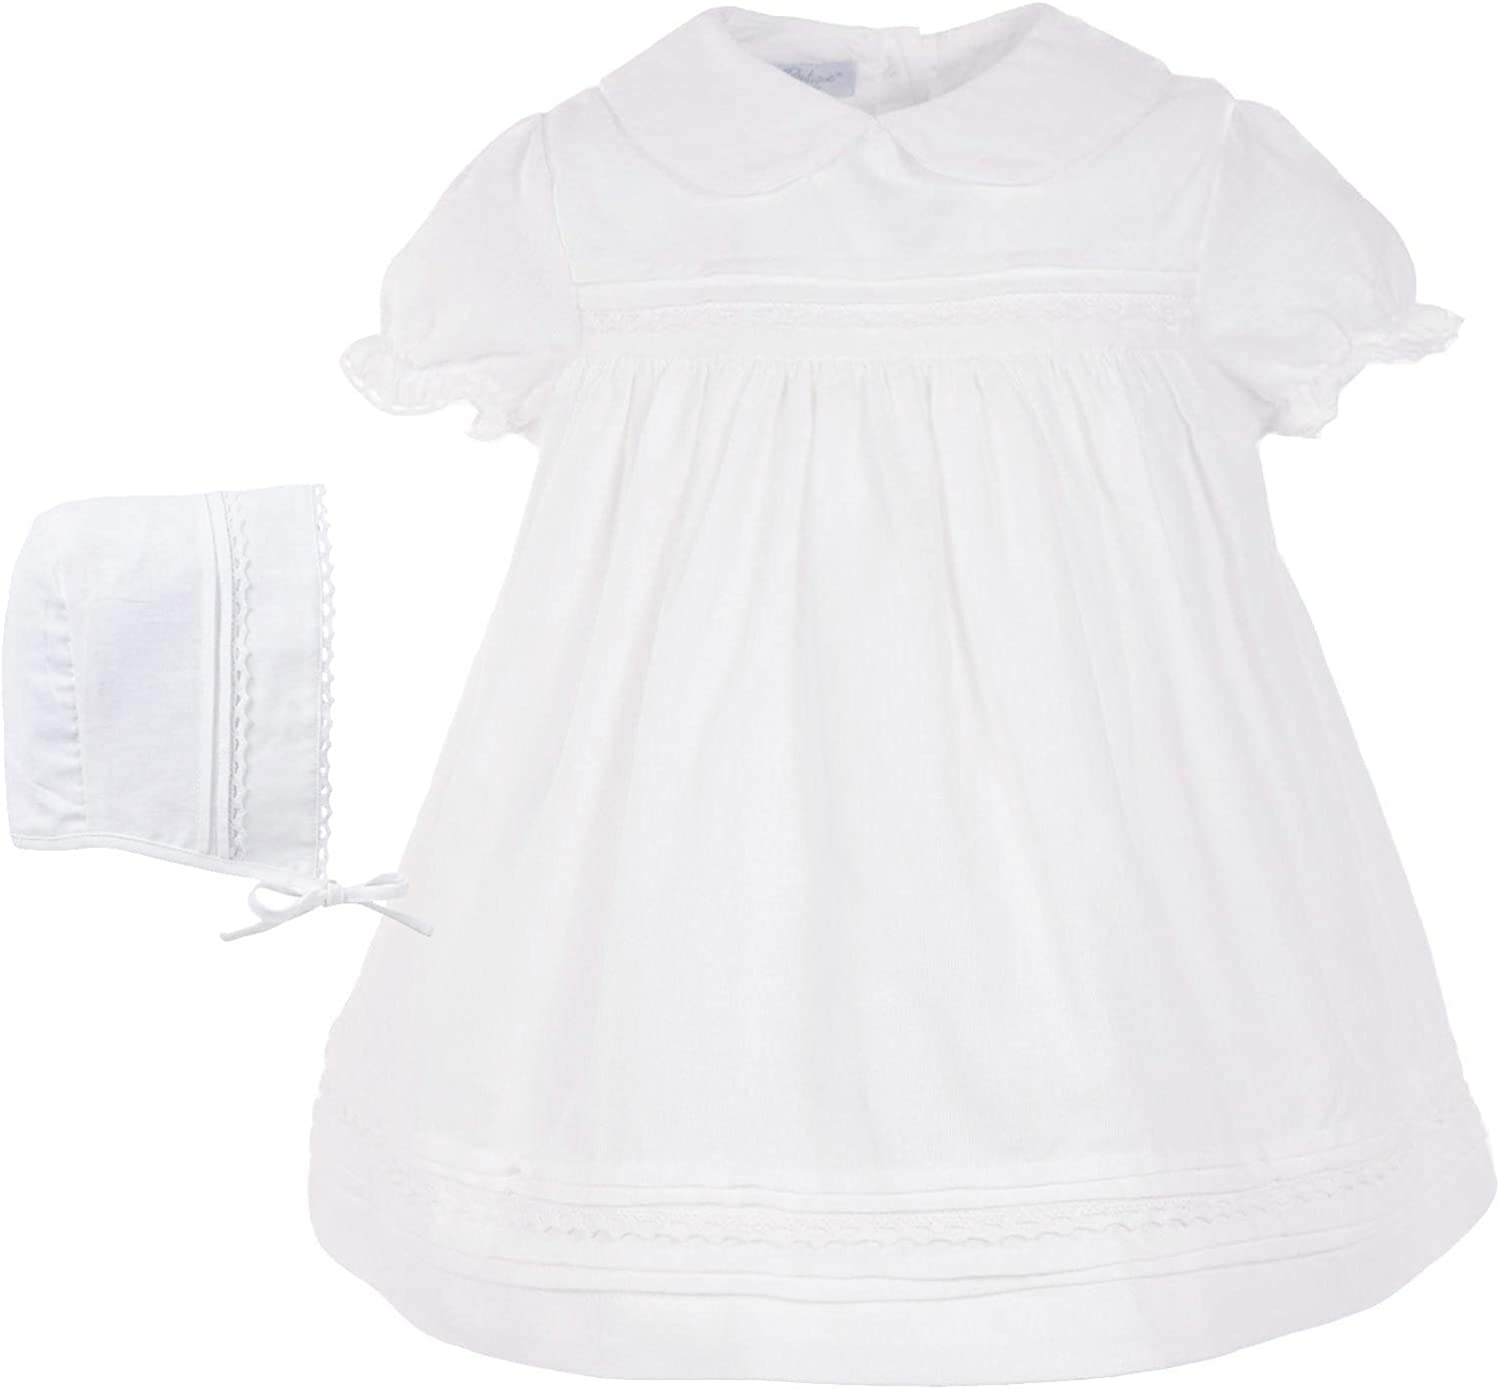 Carriage Ranking TOP6 Boutique Baby Girl White Max 68% OFF Dress Lace with Bonnet